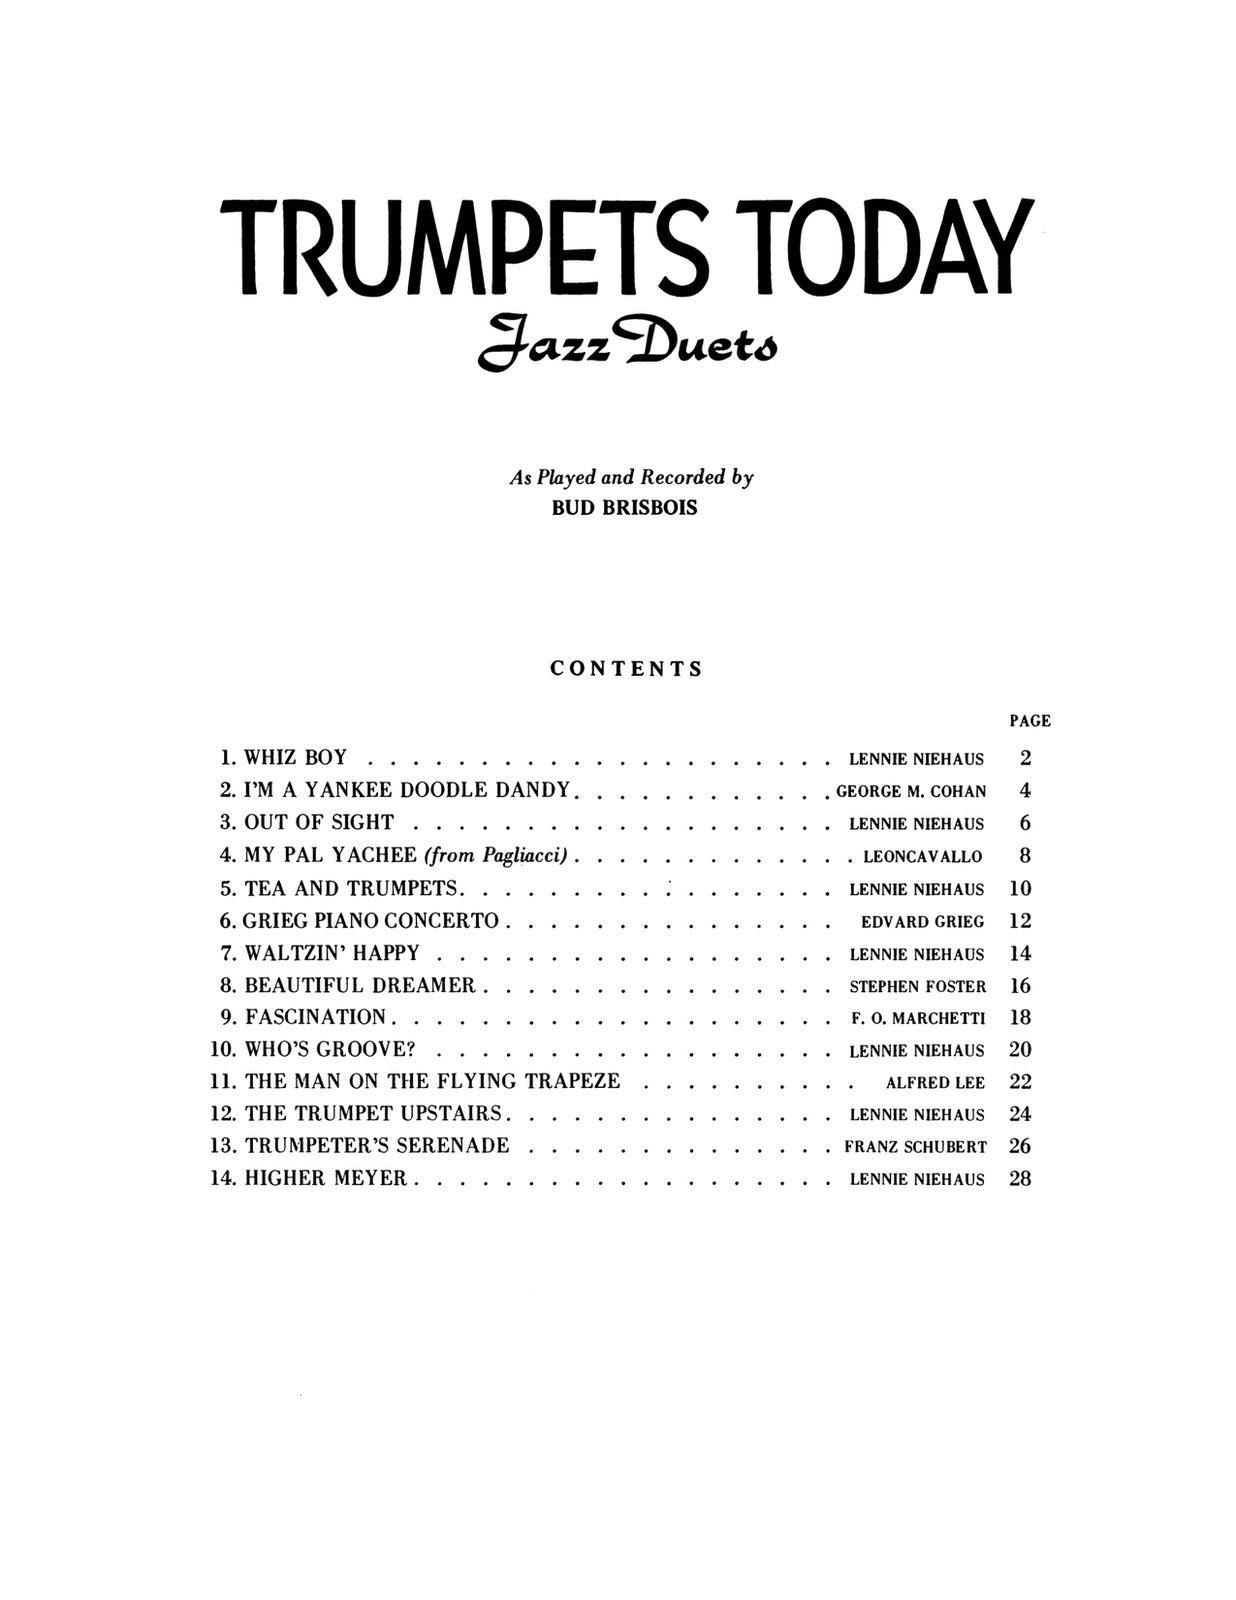 Brisbois, Trumpet Today, Jazz Duets 2